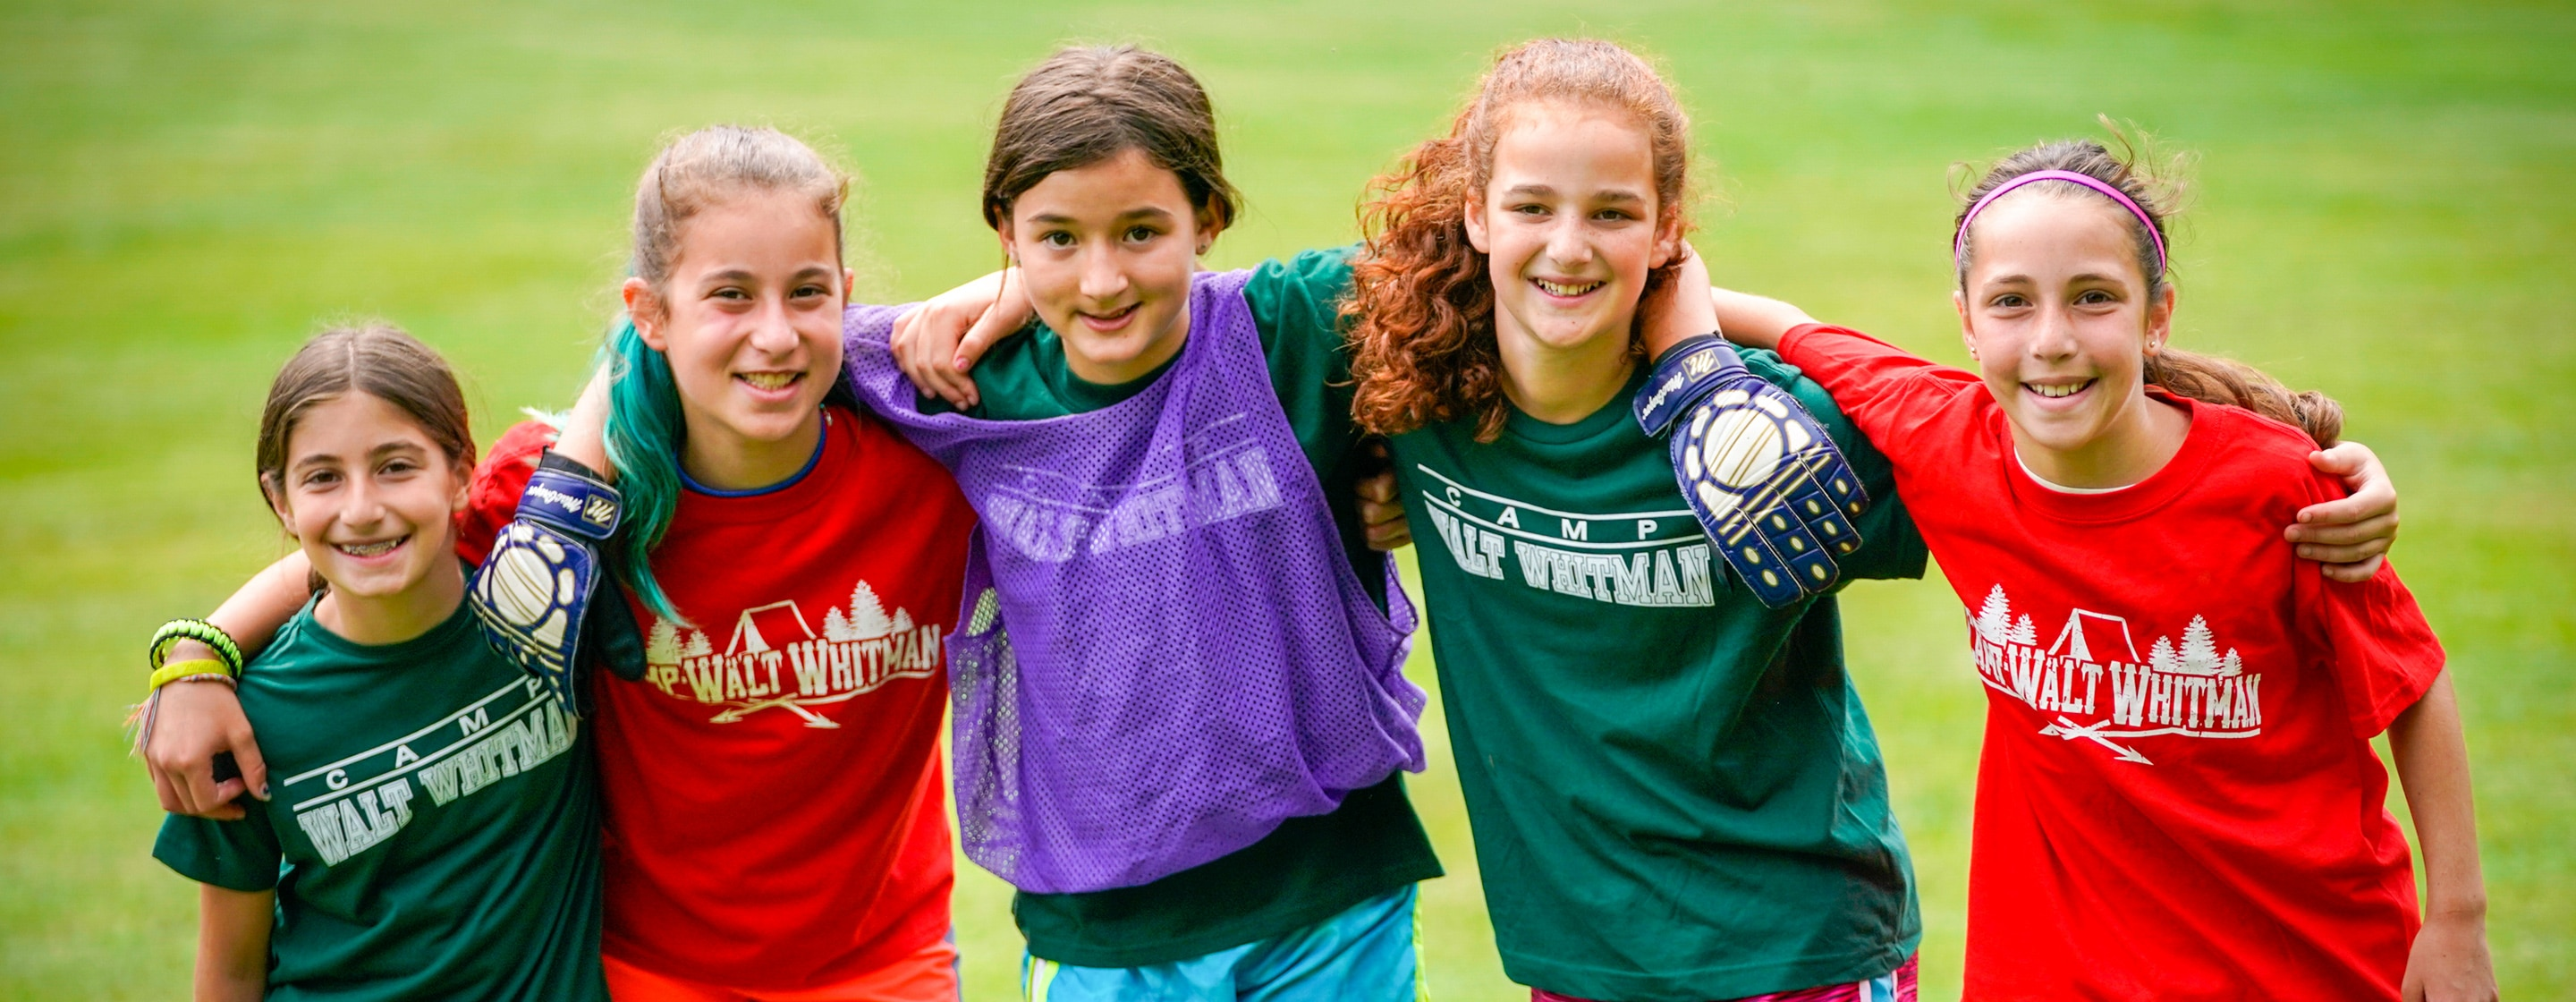 young girls with soccer gear holding shoulders